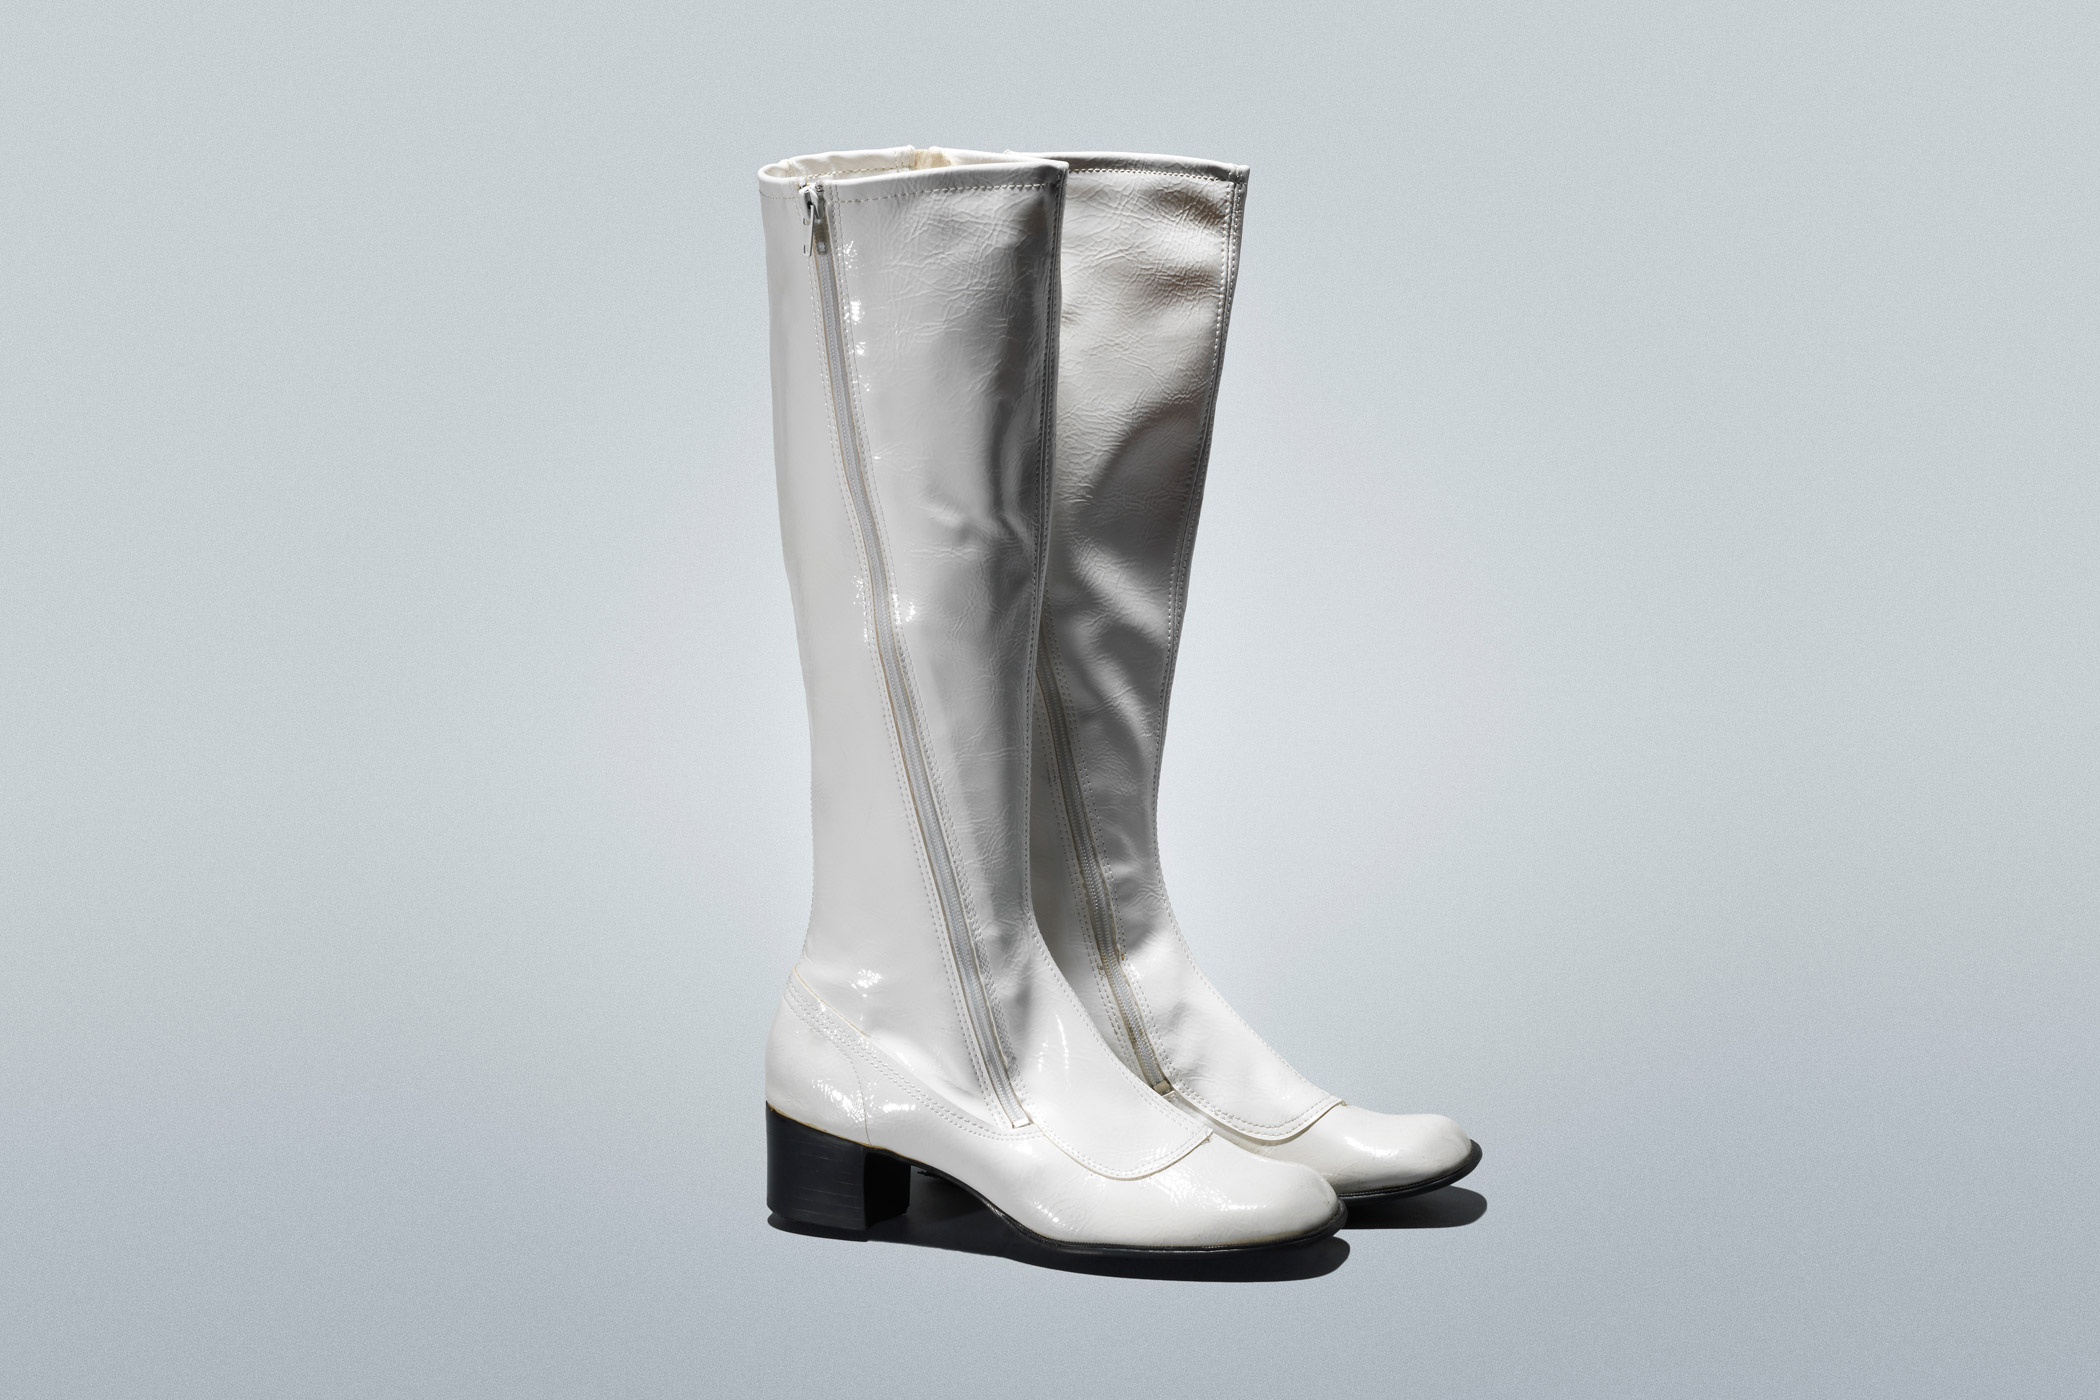 """Sally's go-go boots (1967, from vintage store Playclothes): """"The outfit shocked Don and the audience. Sally's growing up with Megan as an influence… It's very reminiscent of that iconic Twiggy style. Everyone wanted the iconic white go-go boots."""" —Janie Bryant"""